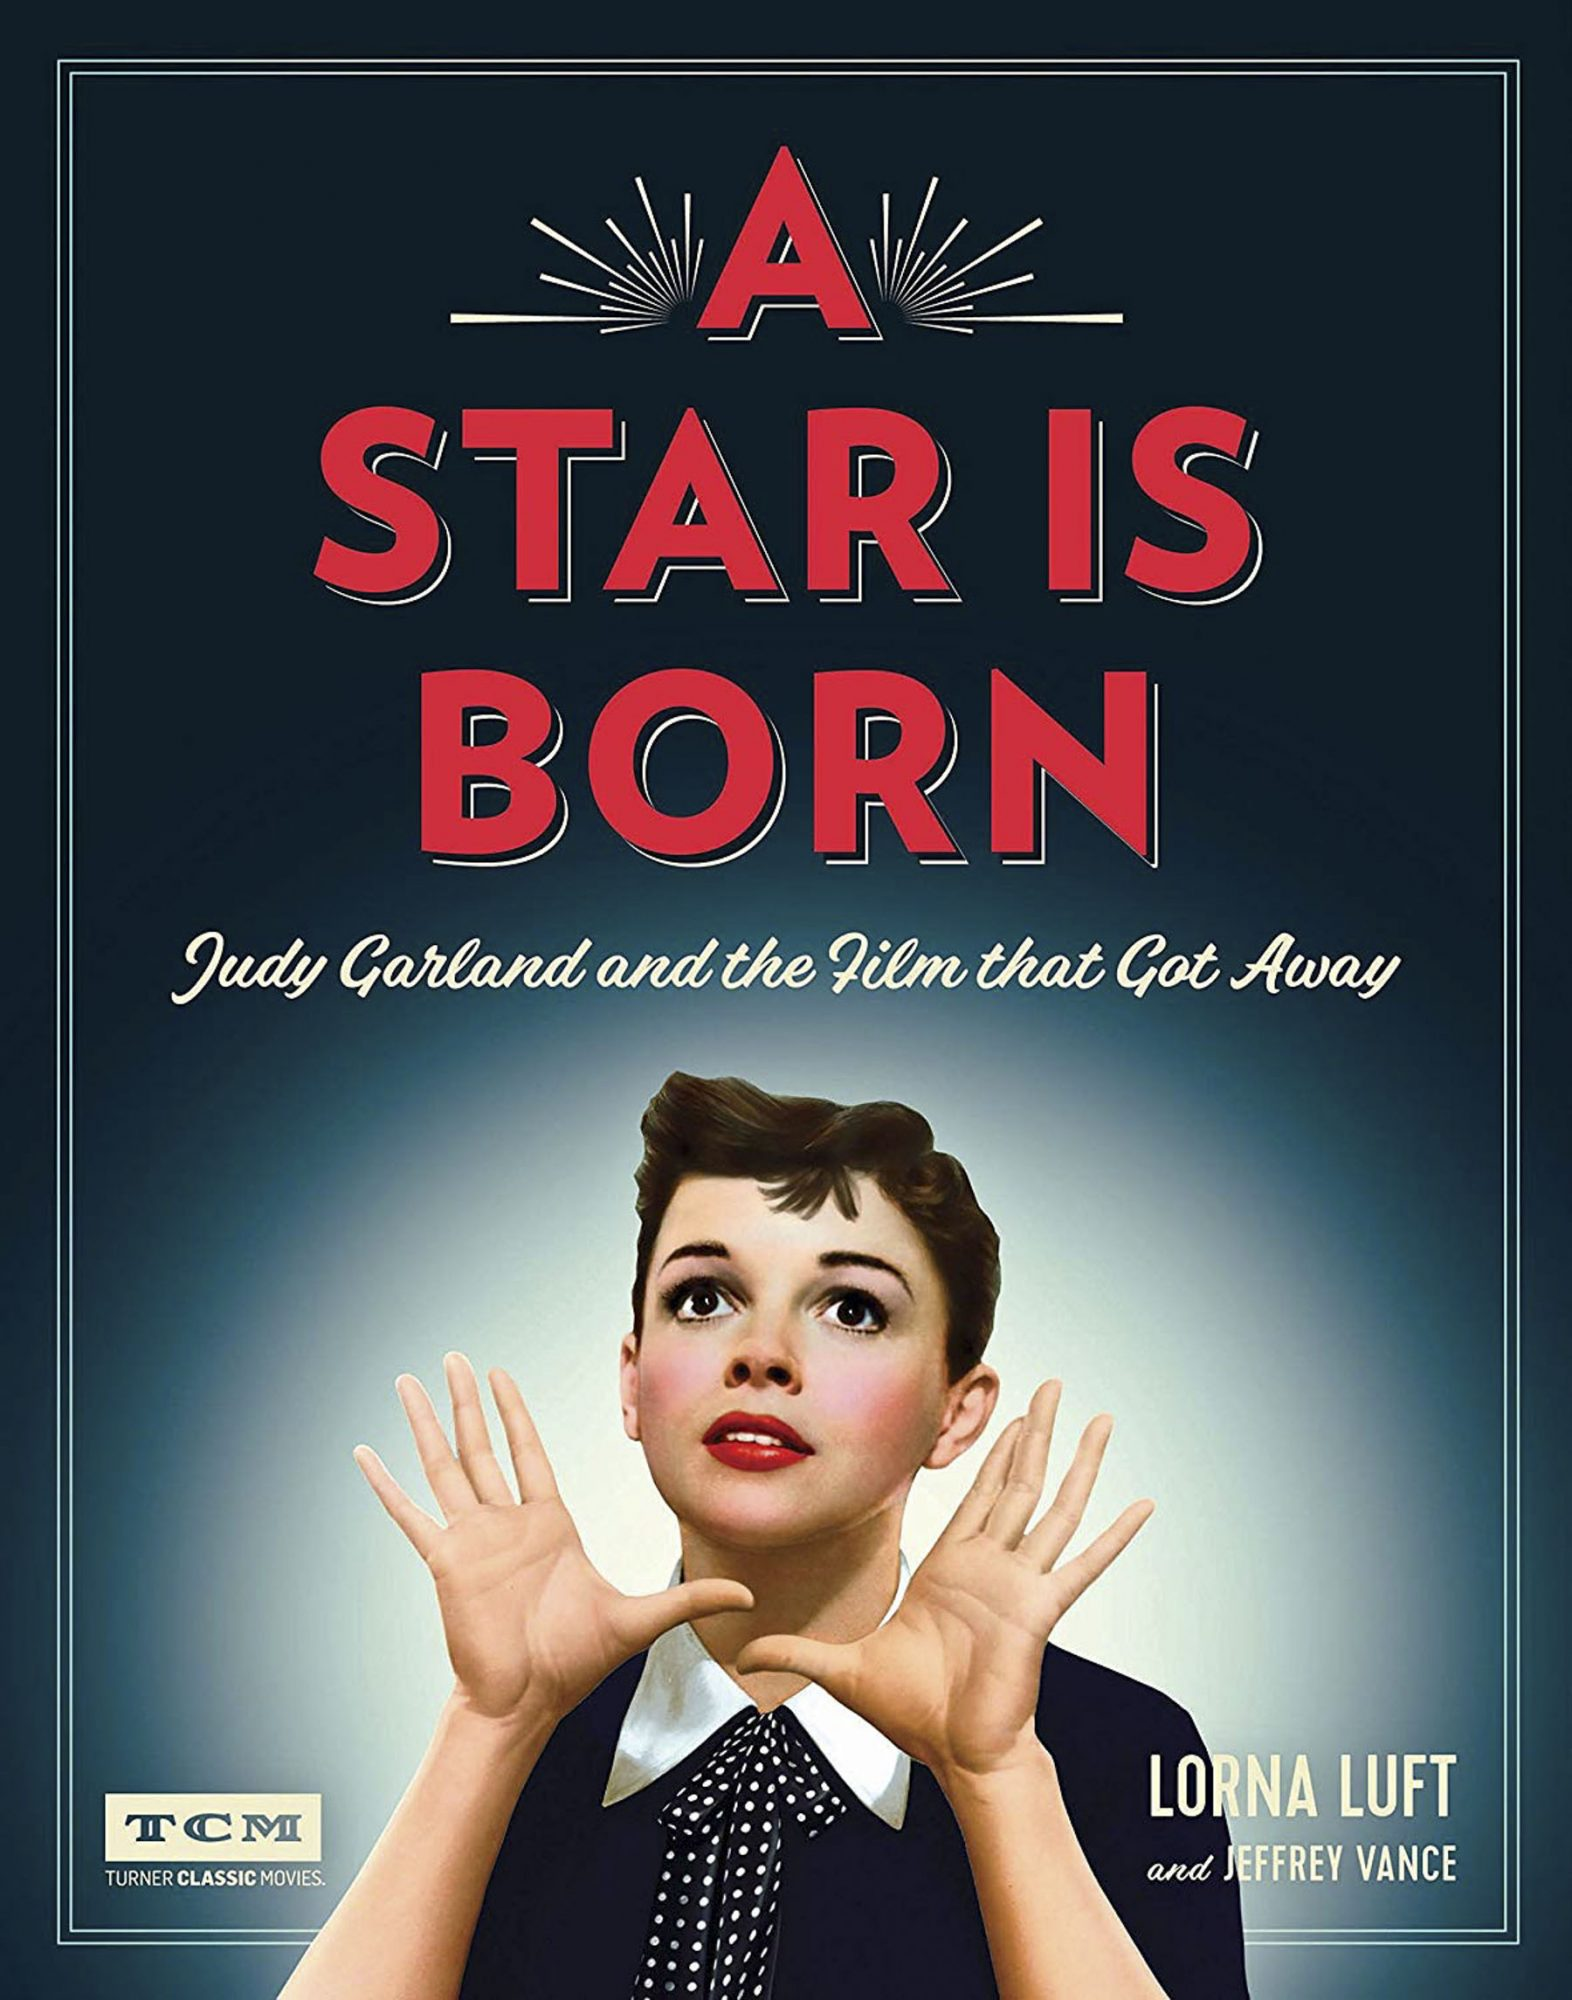 A Star is Born: Judy Garland and the Film That Got Away, by Lorna Luft and Jeffrey Vance